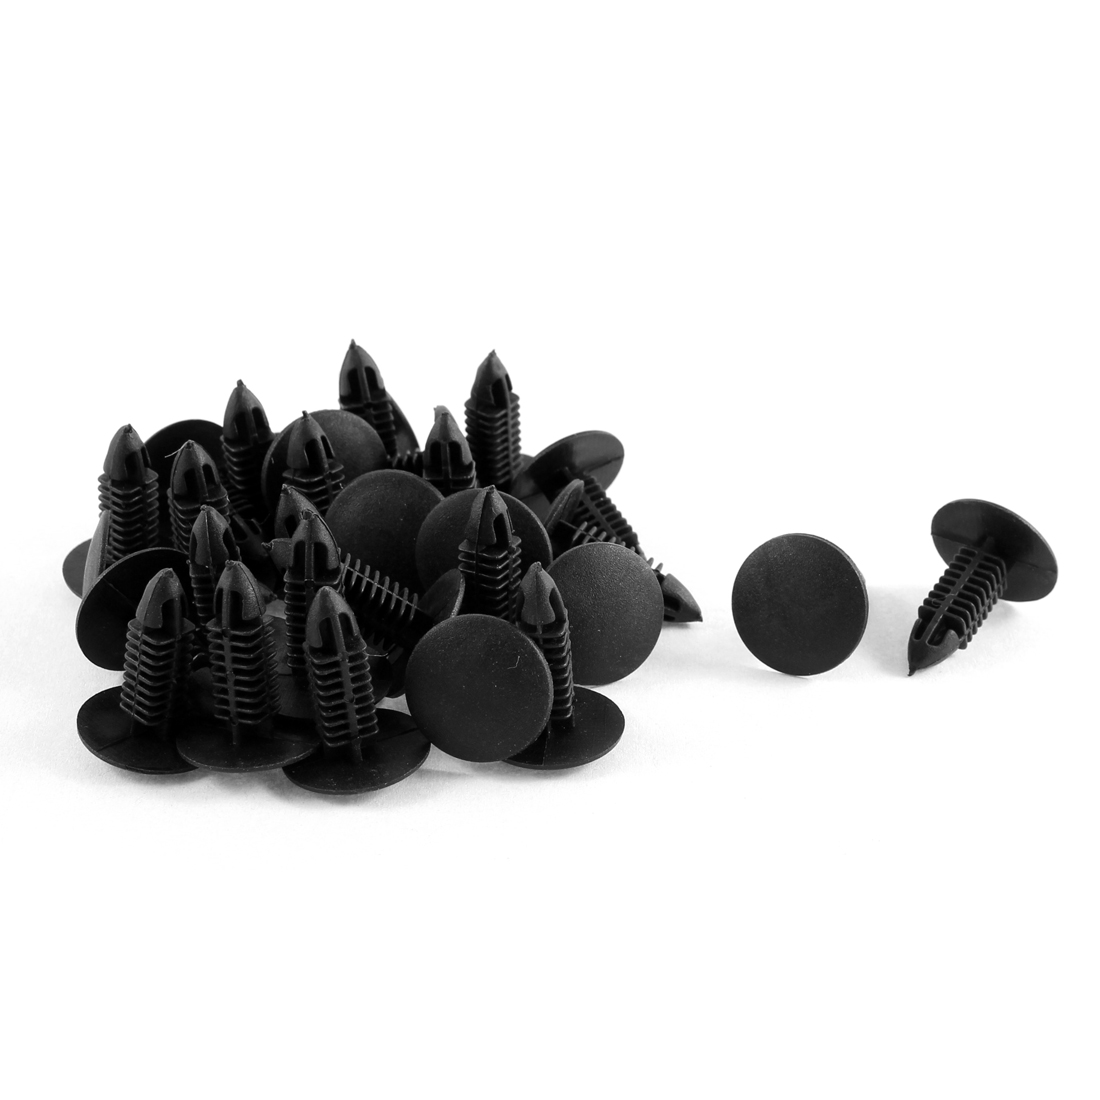 30 Pcs Black Plastic Splash Guard Moulding Bumper Clips 6mm x 17mm x 20mm